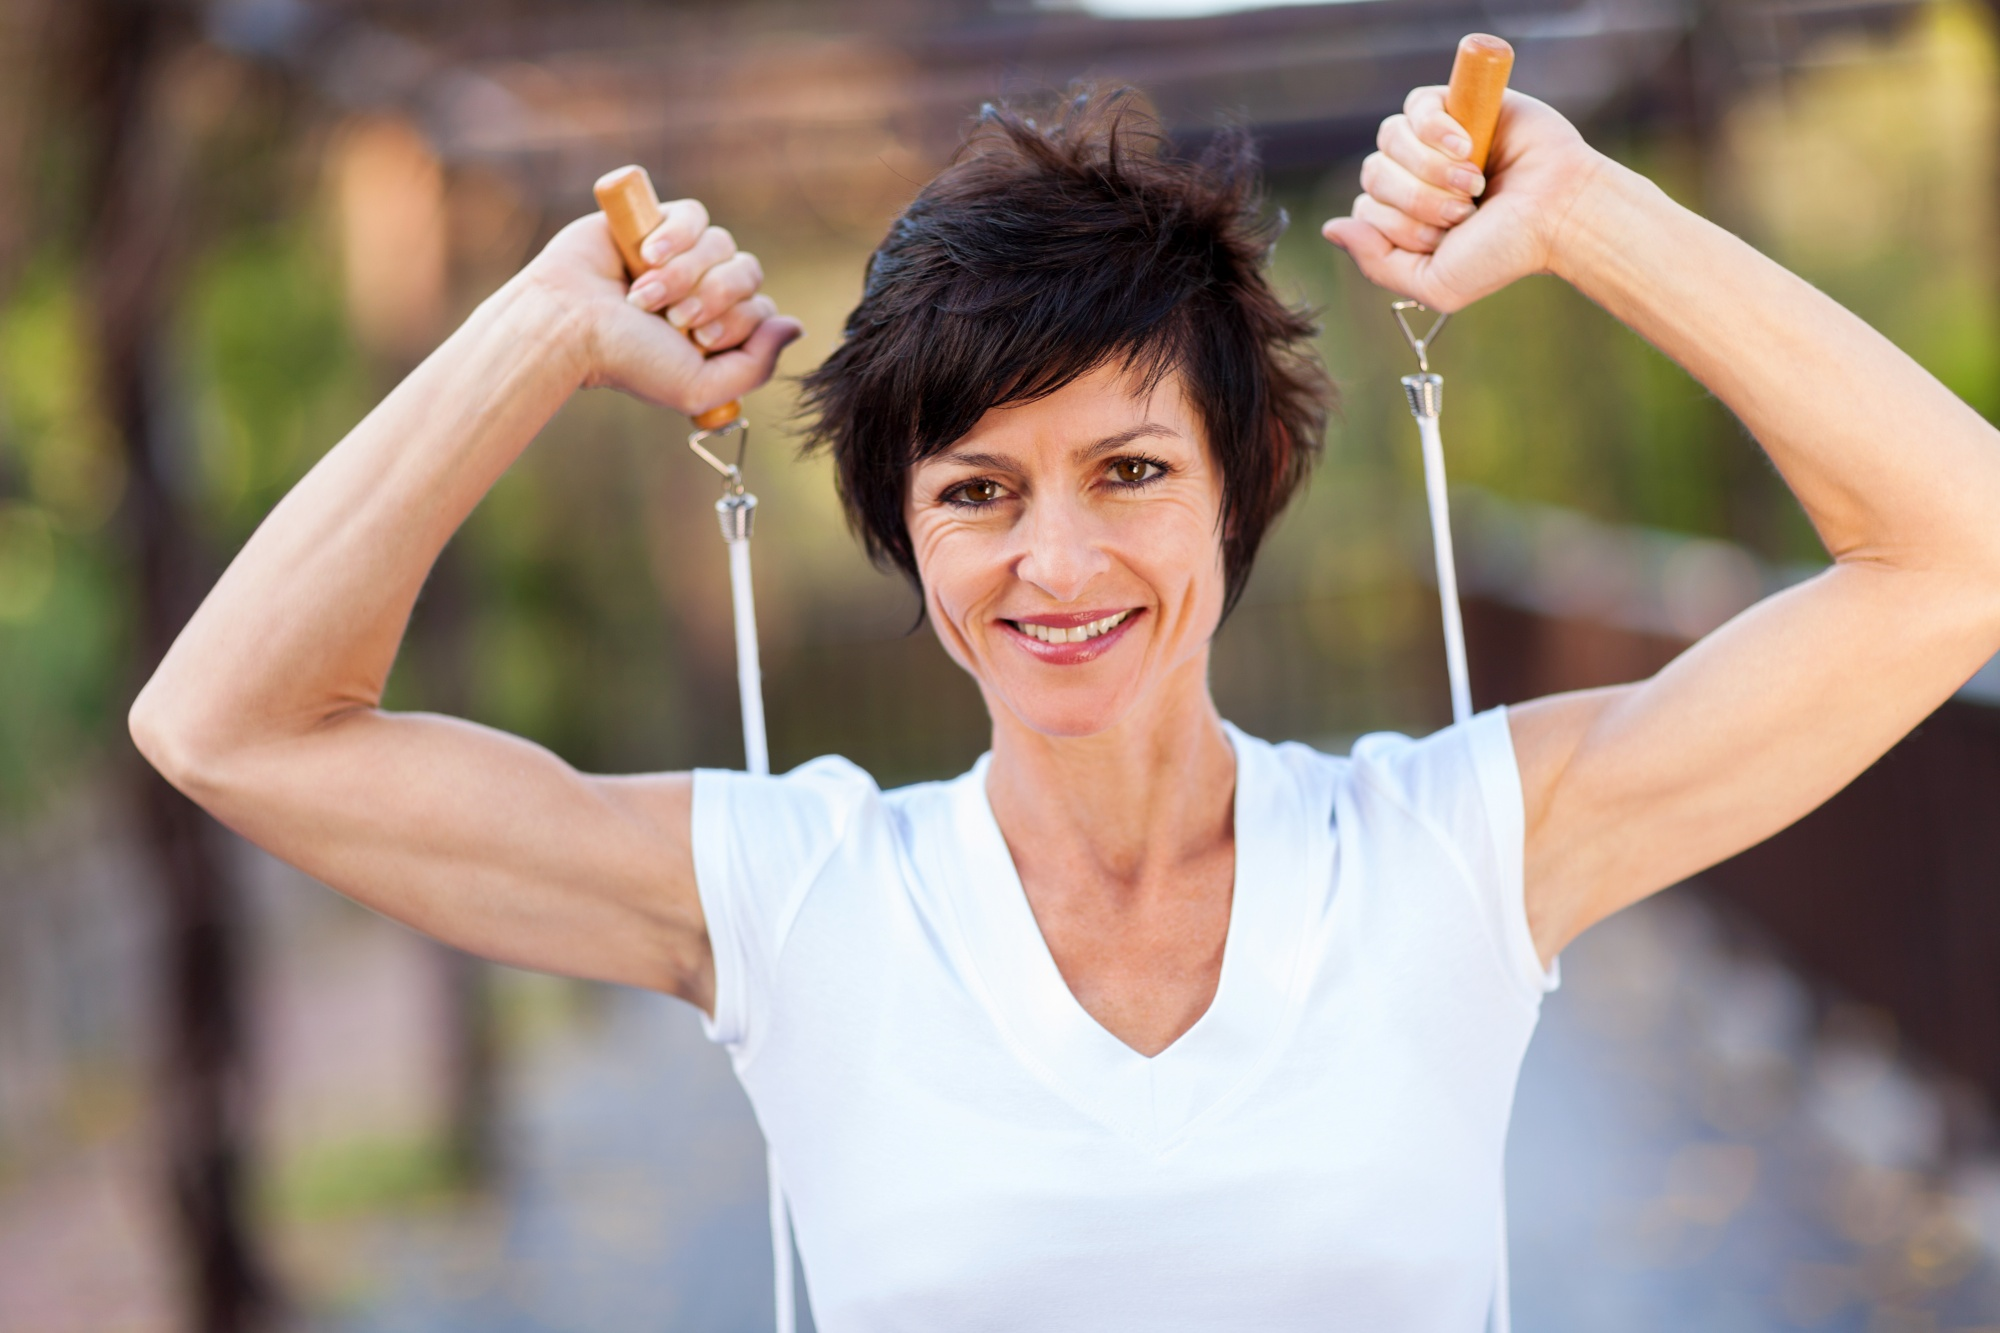 get rid of mummy tummy for good, Dark pixi-haired middle aged woman strong arms with jumping rope